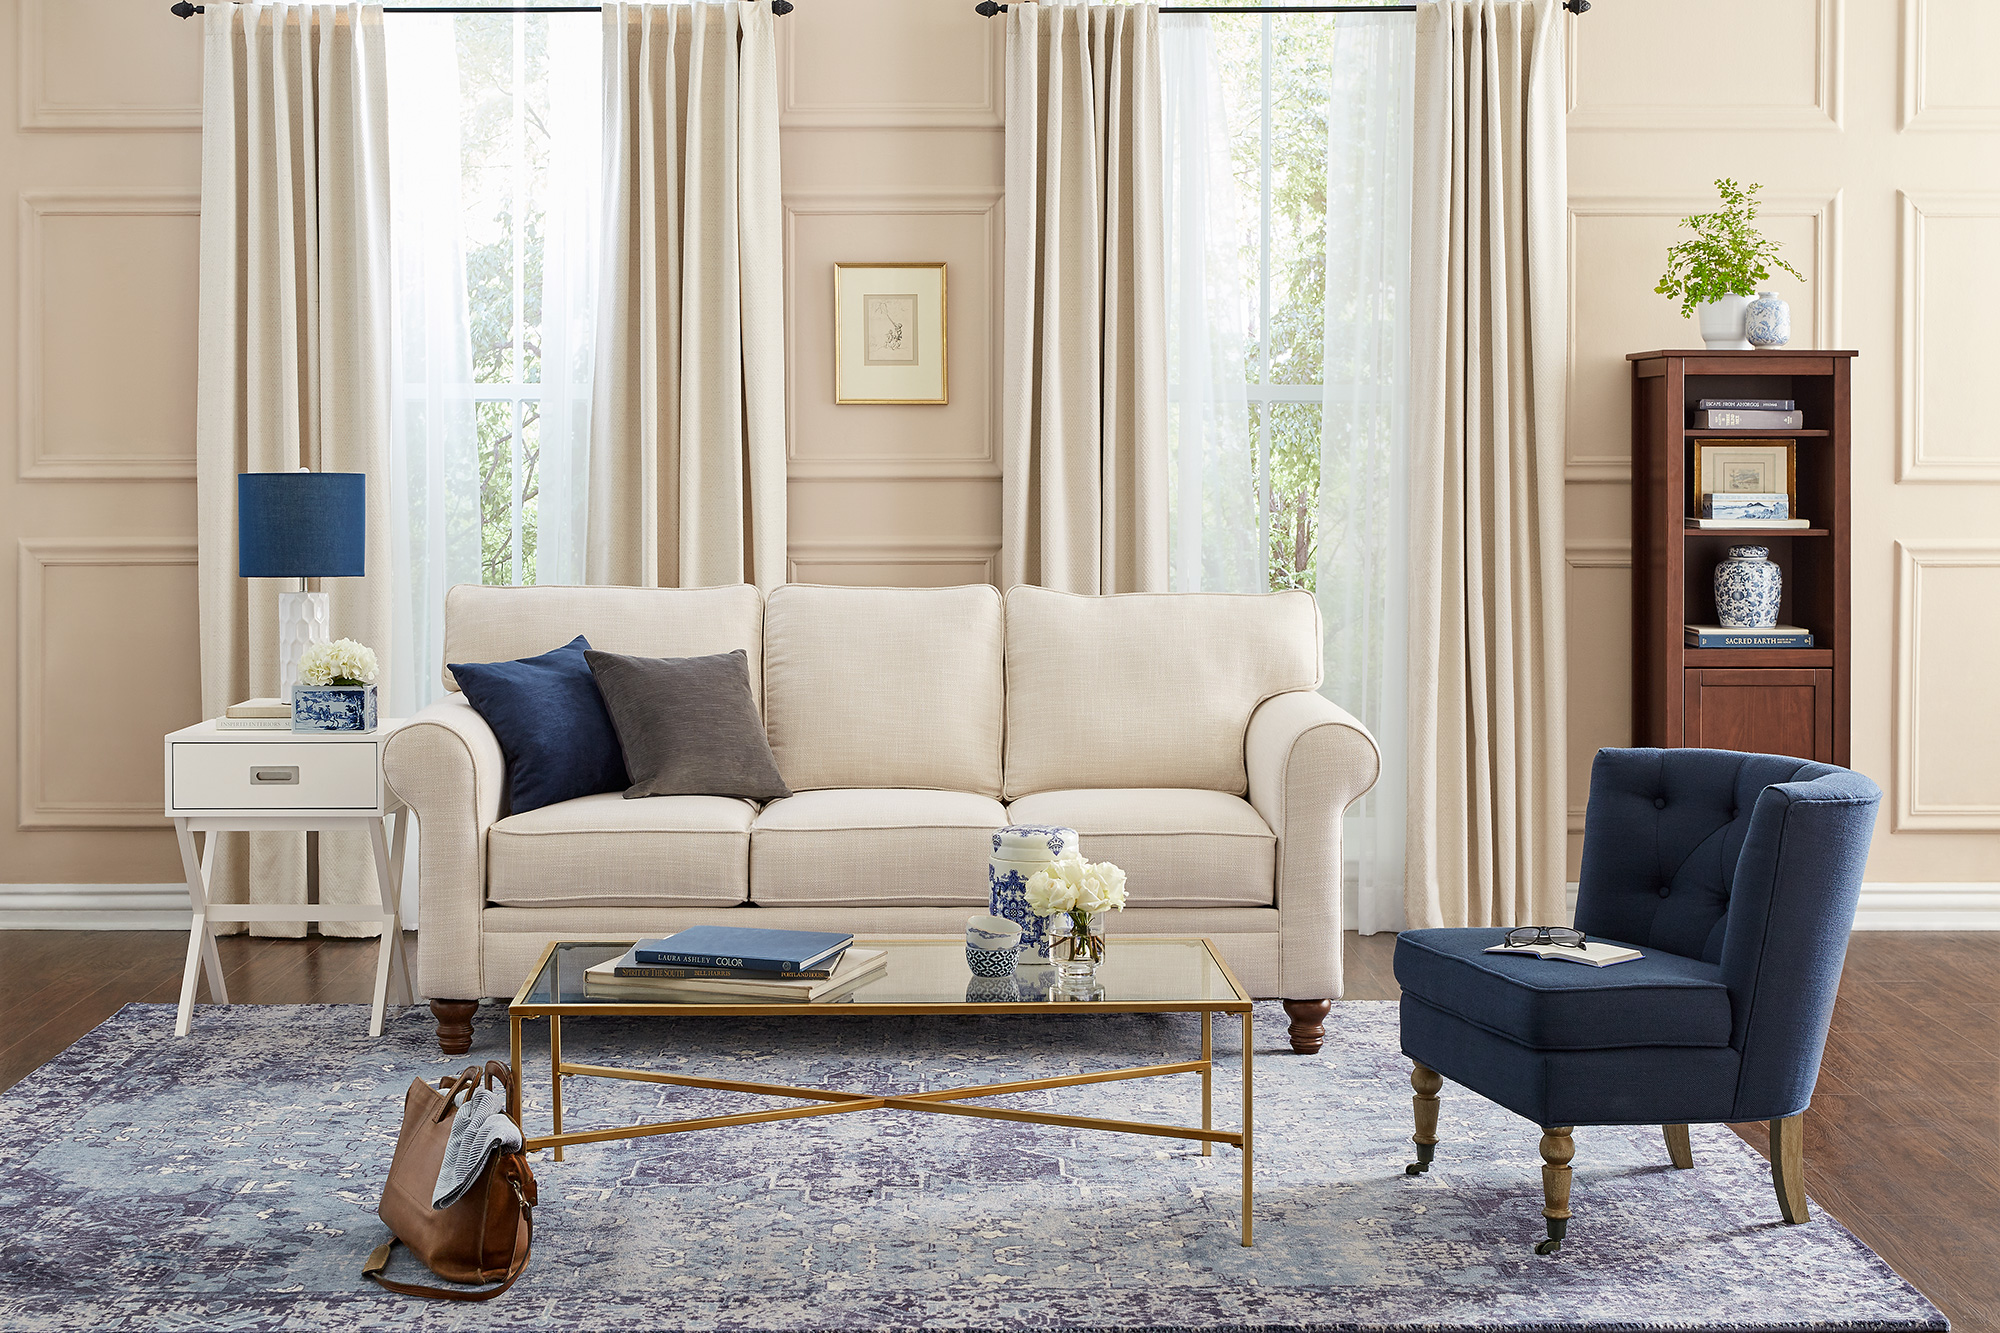 after christmas savings uttermost kellen glass accent table ravenna home living monarch specialties top side cappuccino marble launches its own furnishings collection take peek